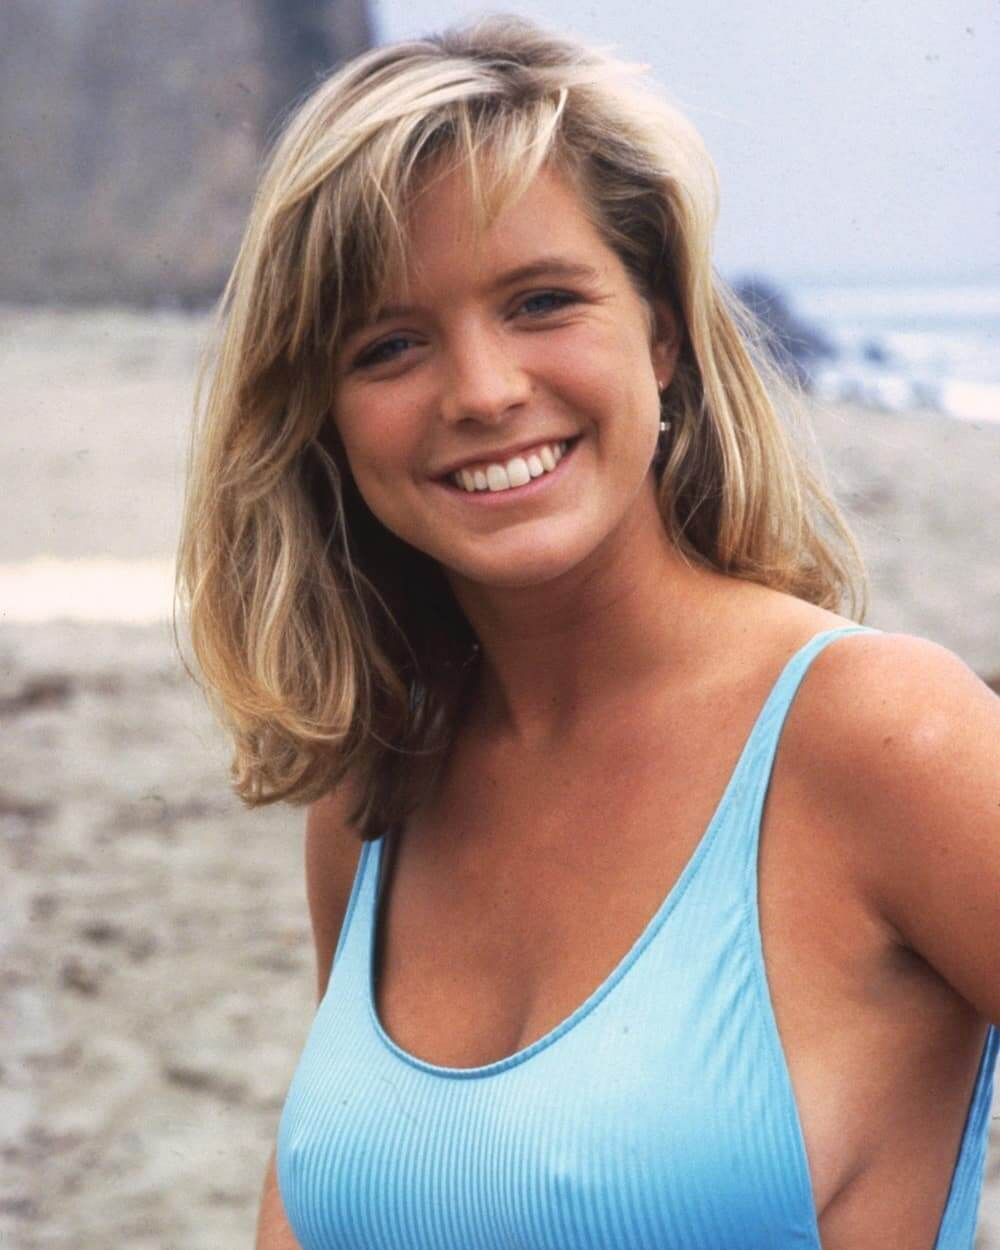 Courtney thorne-smith boobs